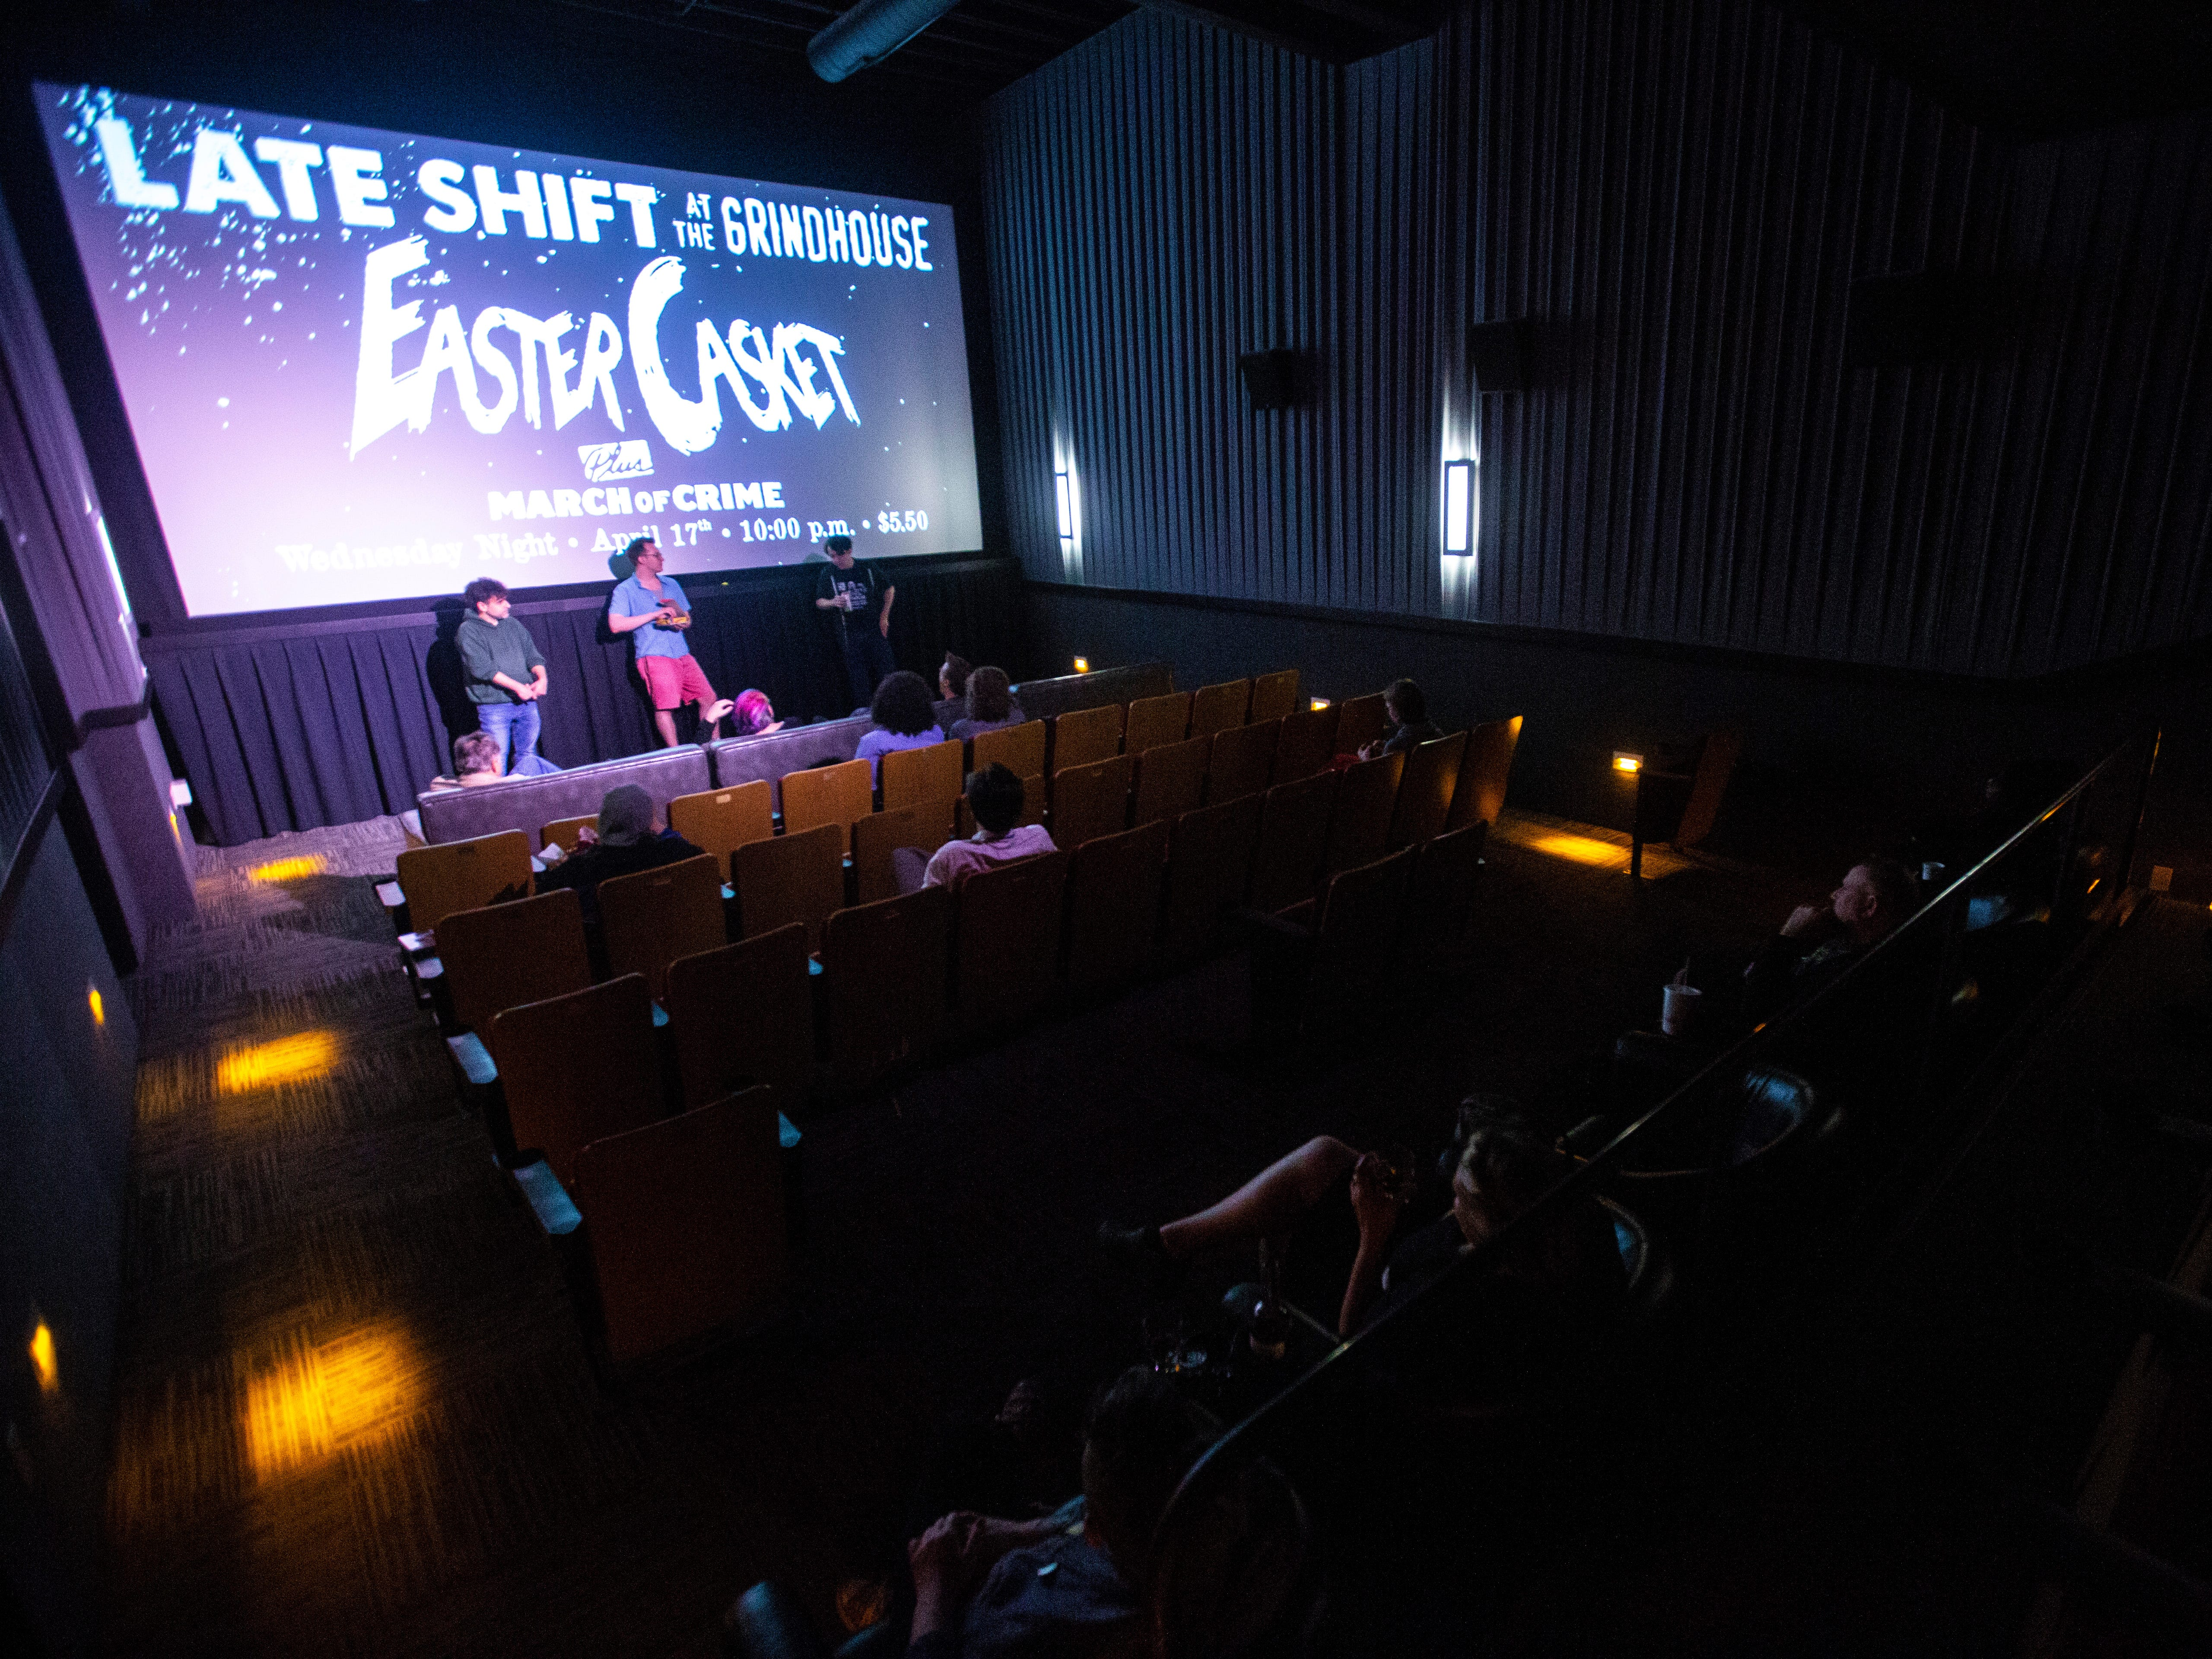 """FilmScene staffers give out door prizes during a """"Late Shift at the Grindhouse"""" movie screening, Wednesday, April 17, 2019, at FilmScene in Iowa City, Iowa."""